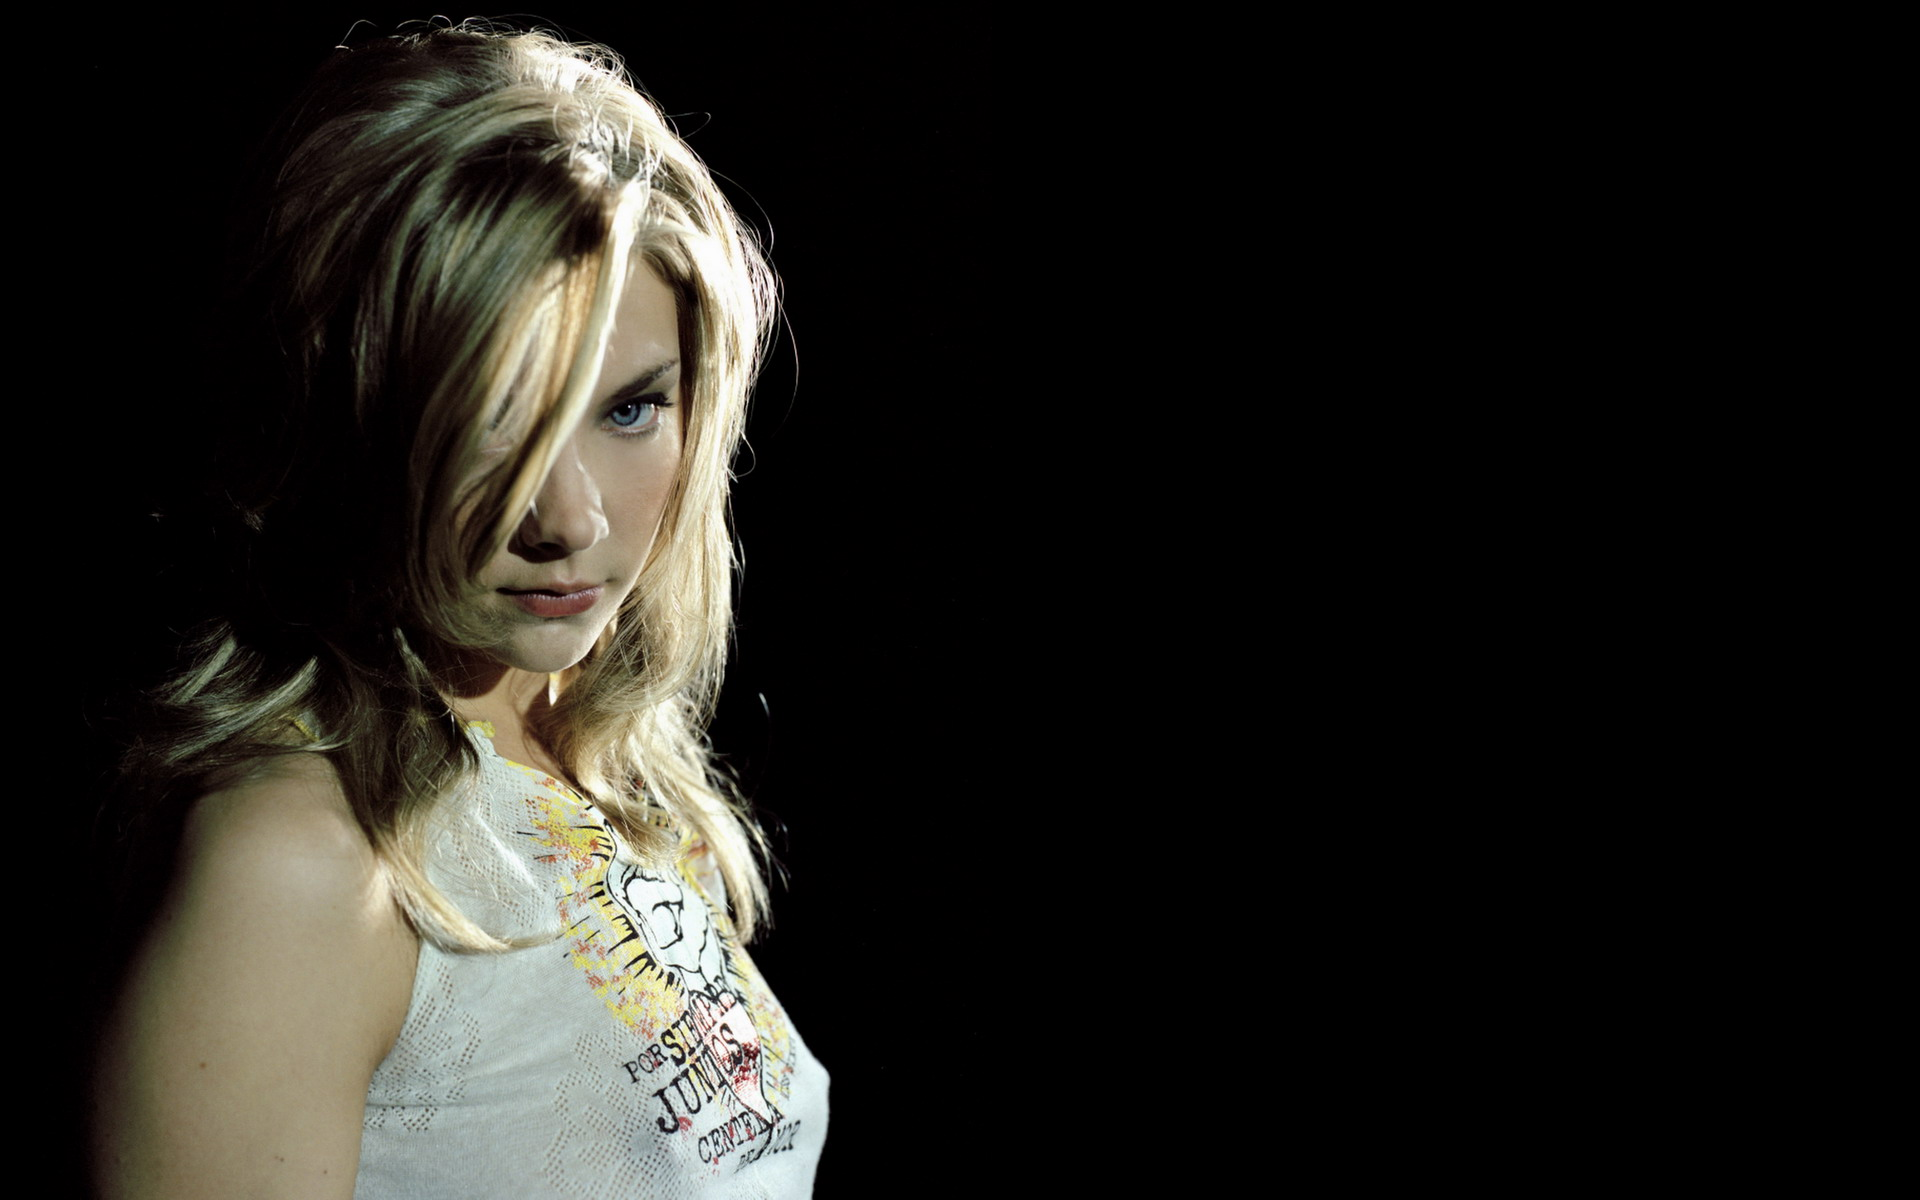 Natalie Dormer - Actresses Wallpaper (29030150) - Fanpop